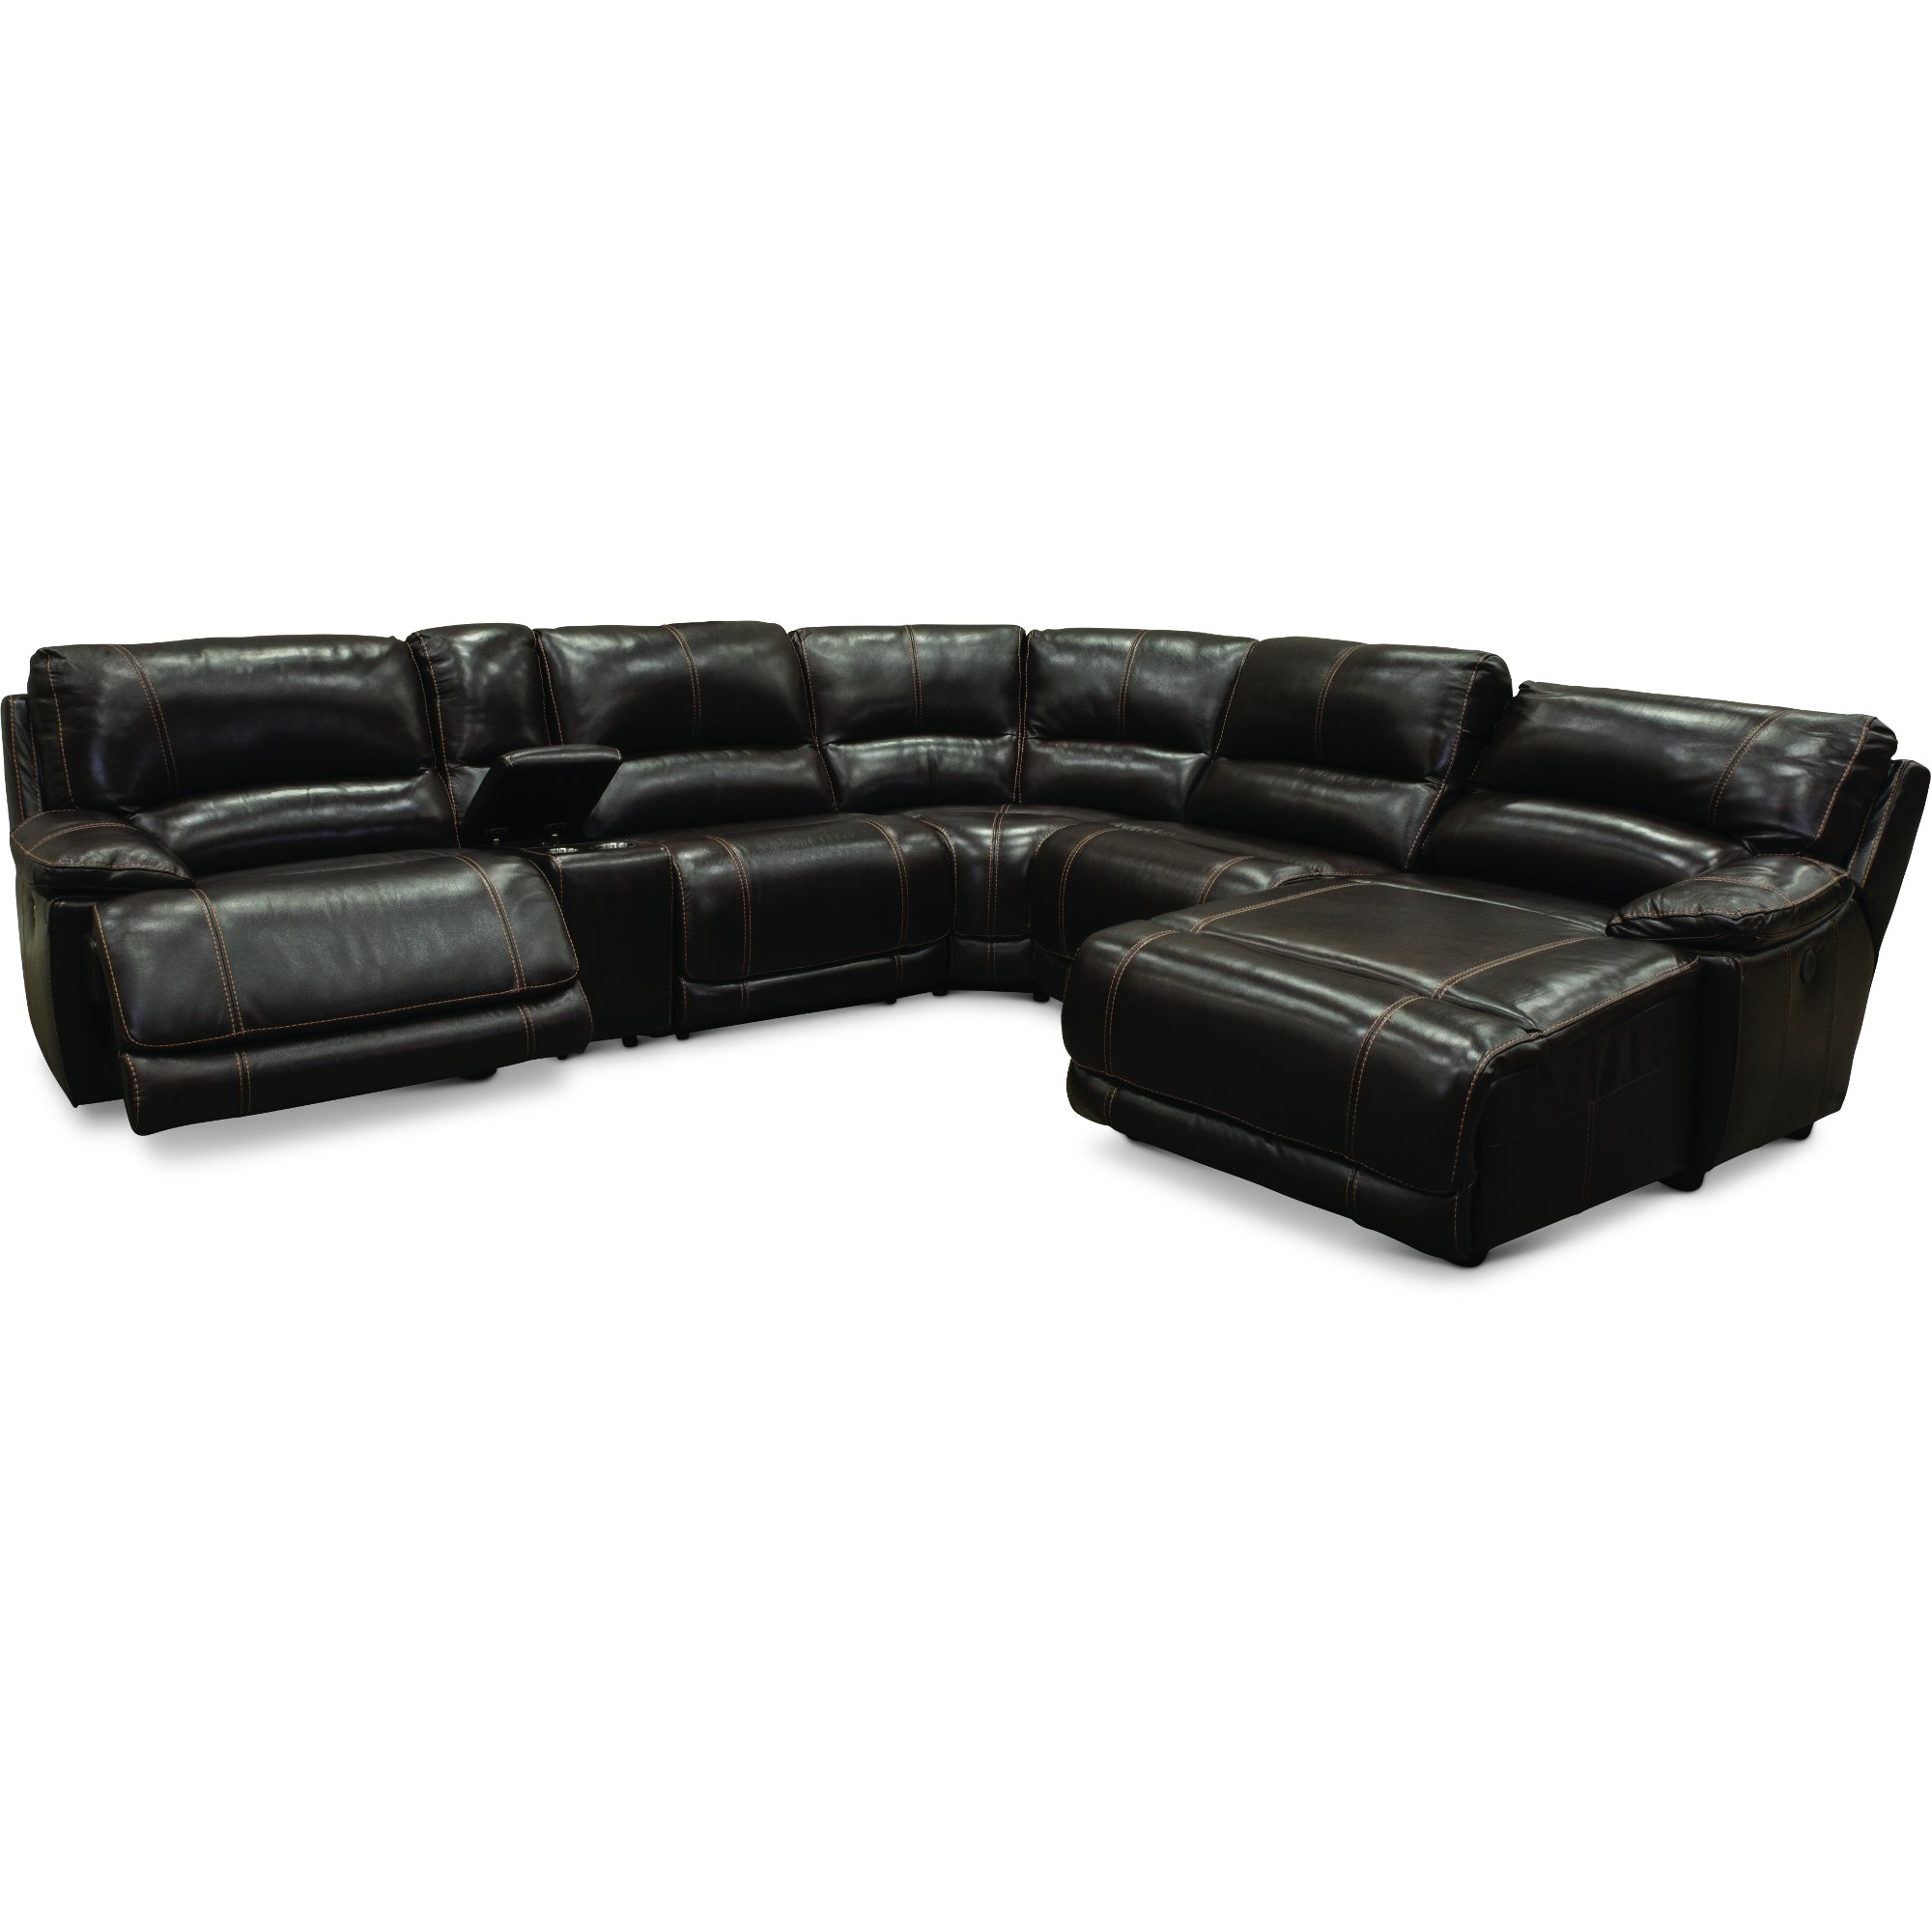 Dark Brown Leather-Match Power Reclining Sectional Sofa - Brant | RC ...